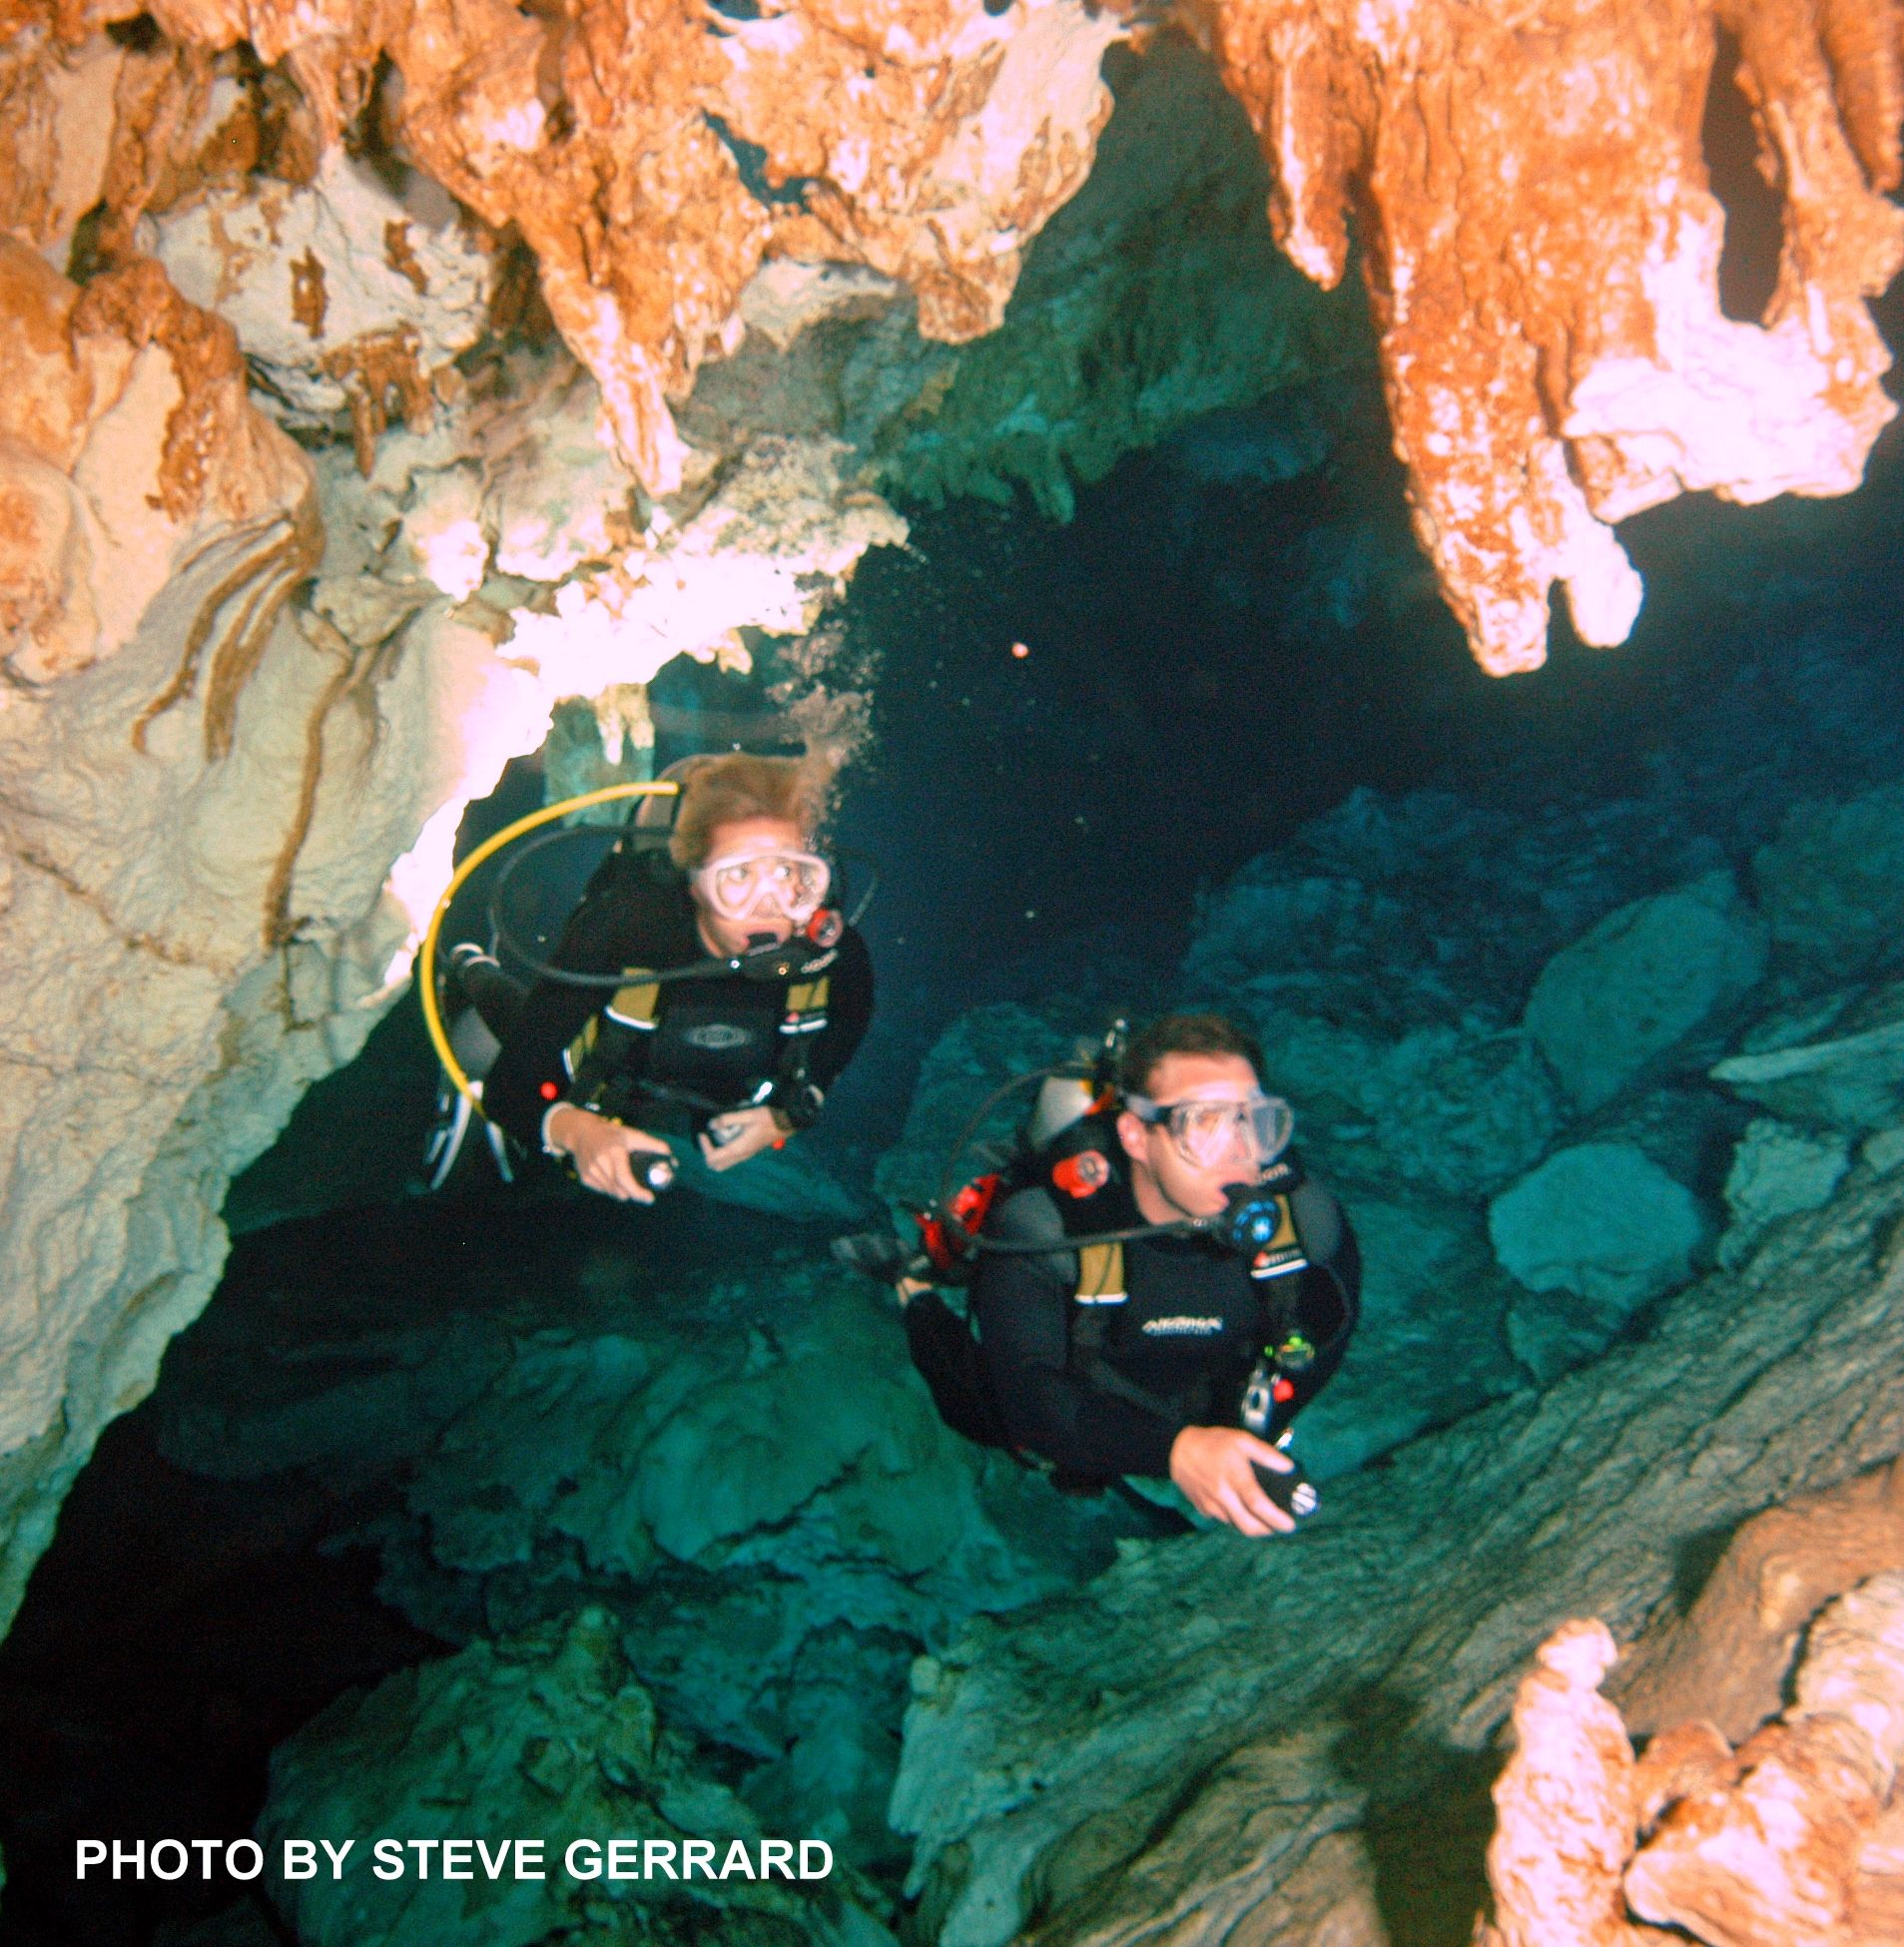 Scuba diving this cenote is spectacular.